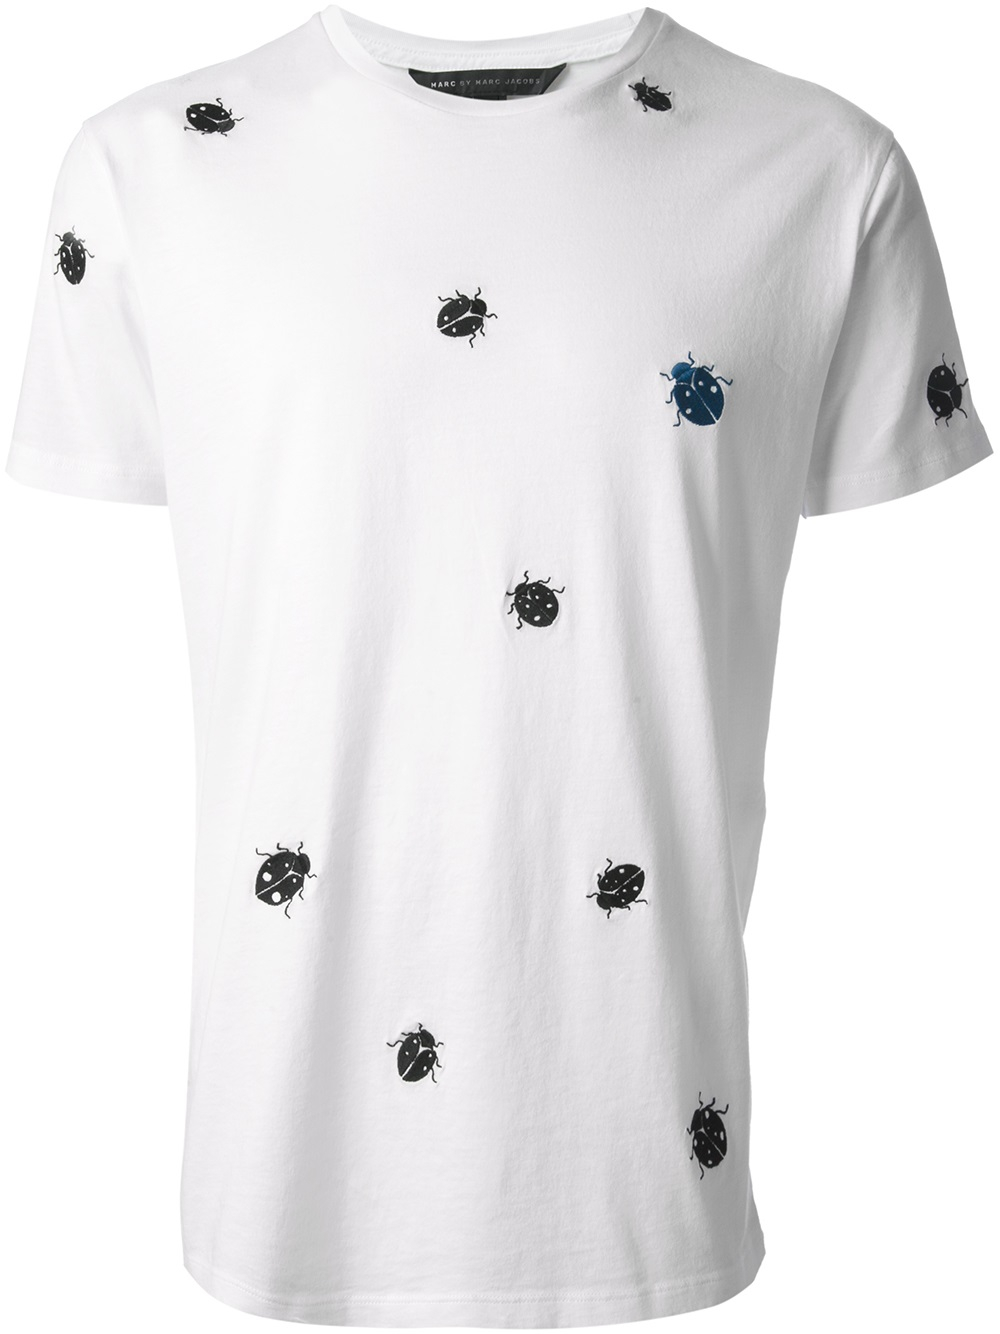 Marc jacobs t shirts sale